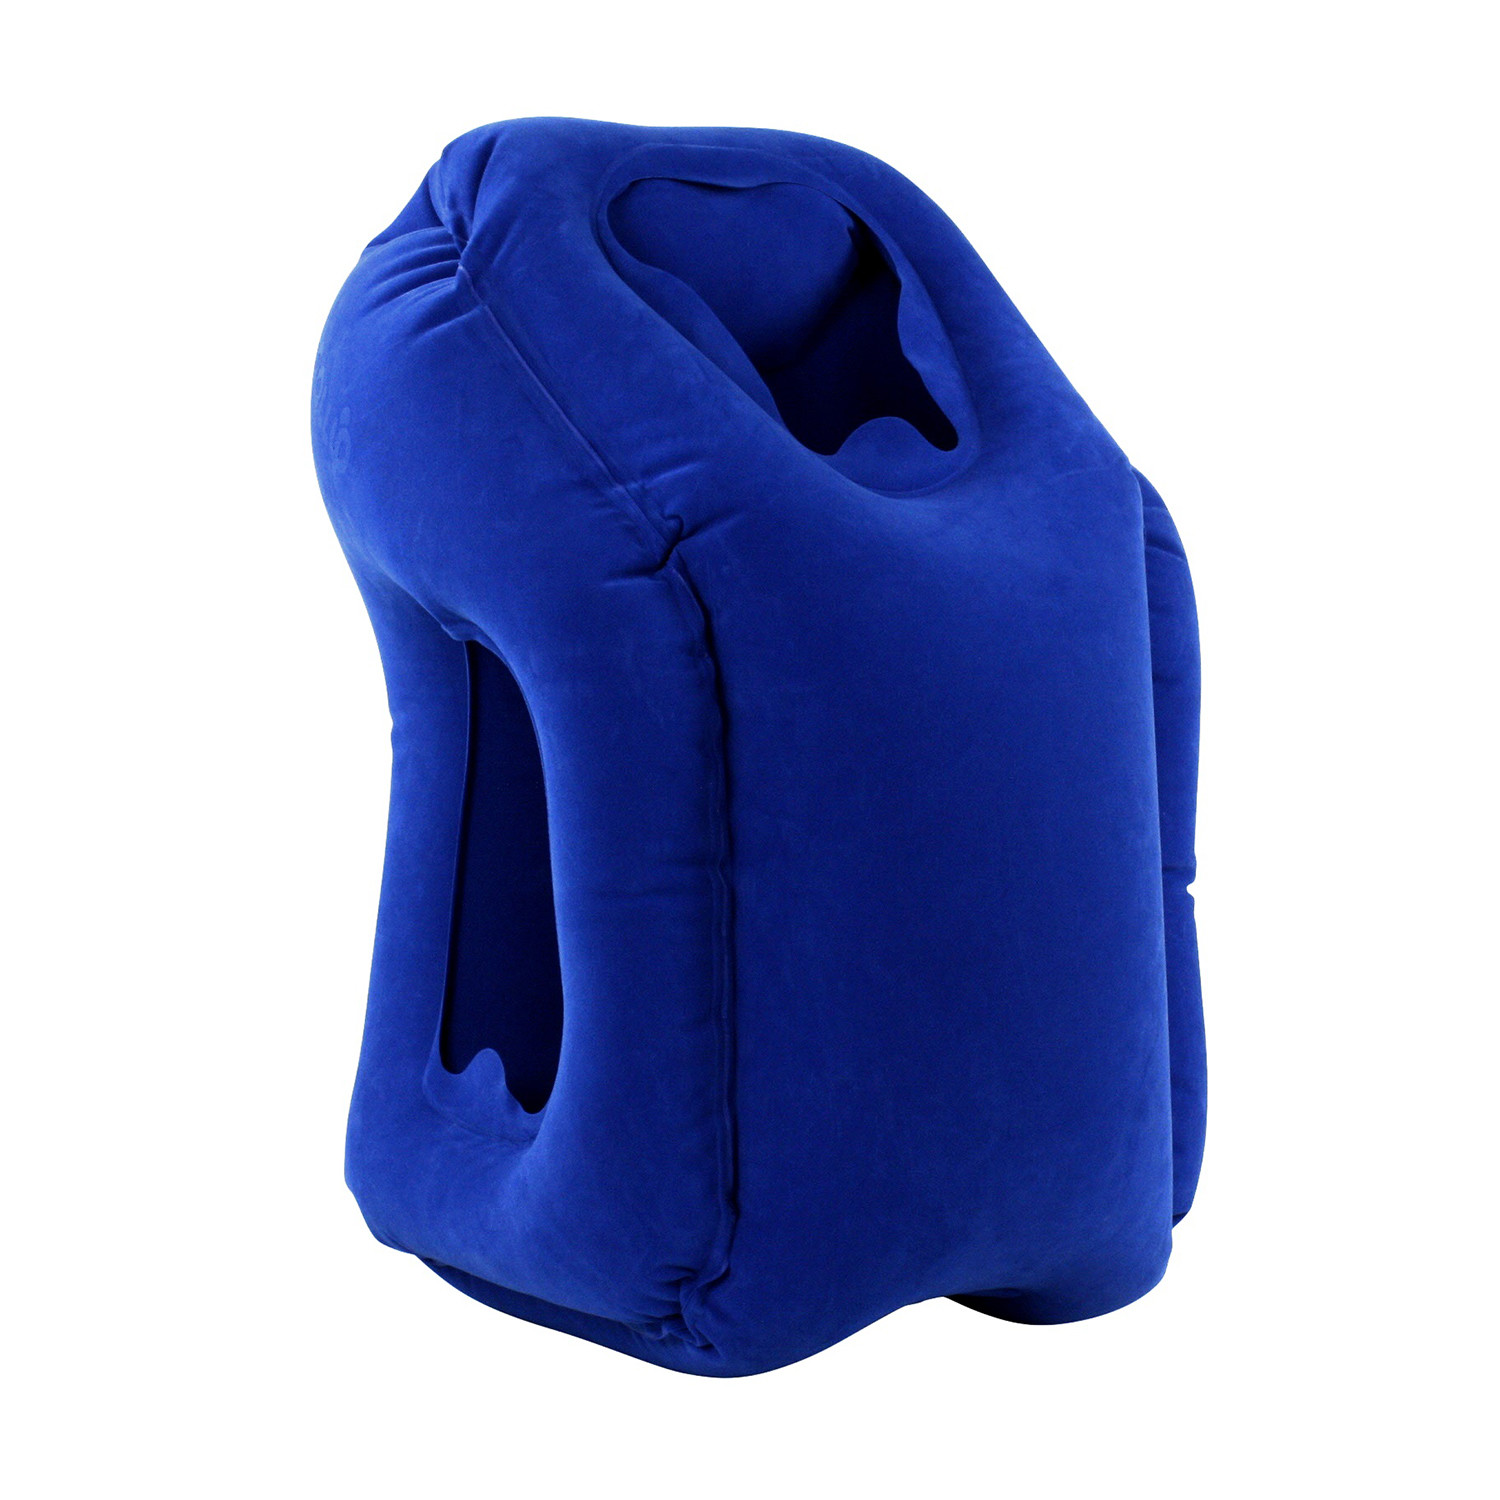 Woollip Travel Pillow // Blue - WOOLLIP - Touch of Modern